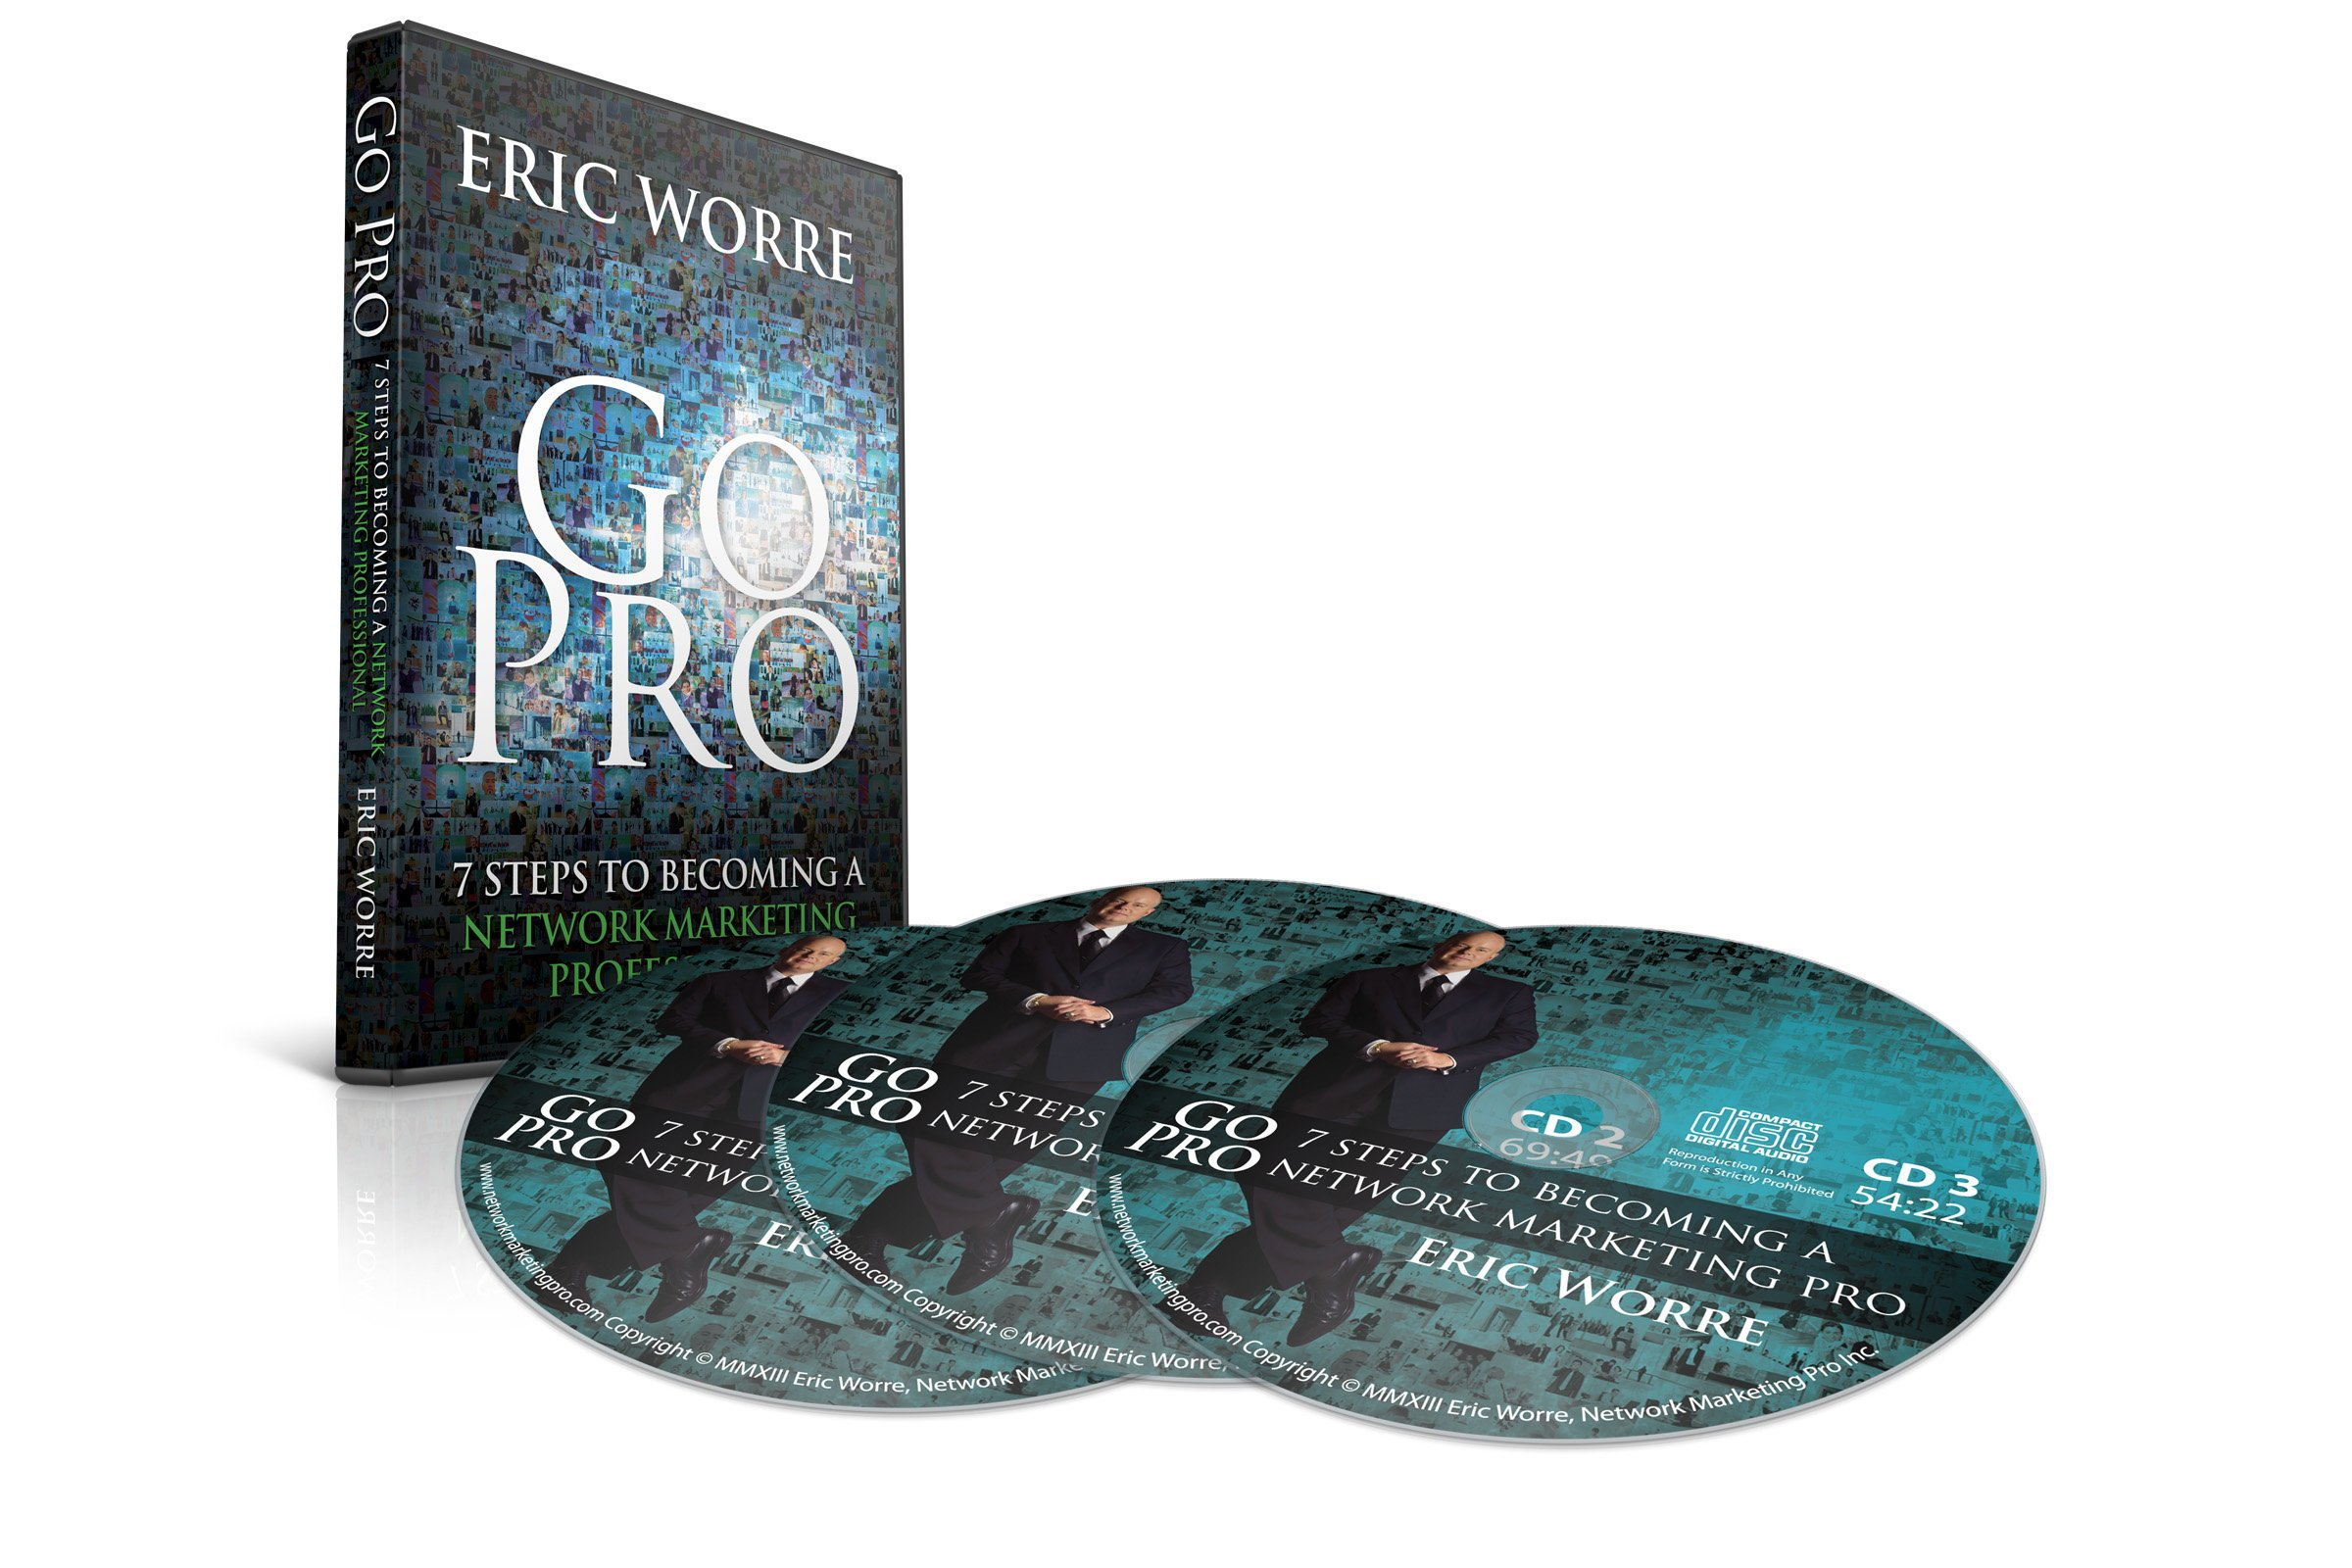 Go pro 7 steps to becoming a network marketing professional 3 cd go pro 7 steps to becoming a network marketing professional 3 cd audiobook eric worre 8601400876022 amazon books fandeluxe Gallery